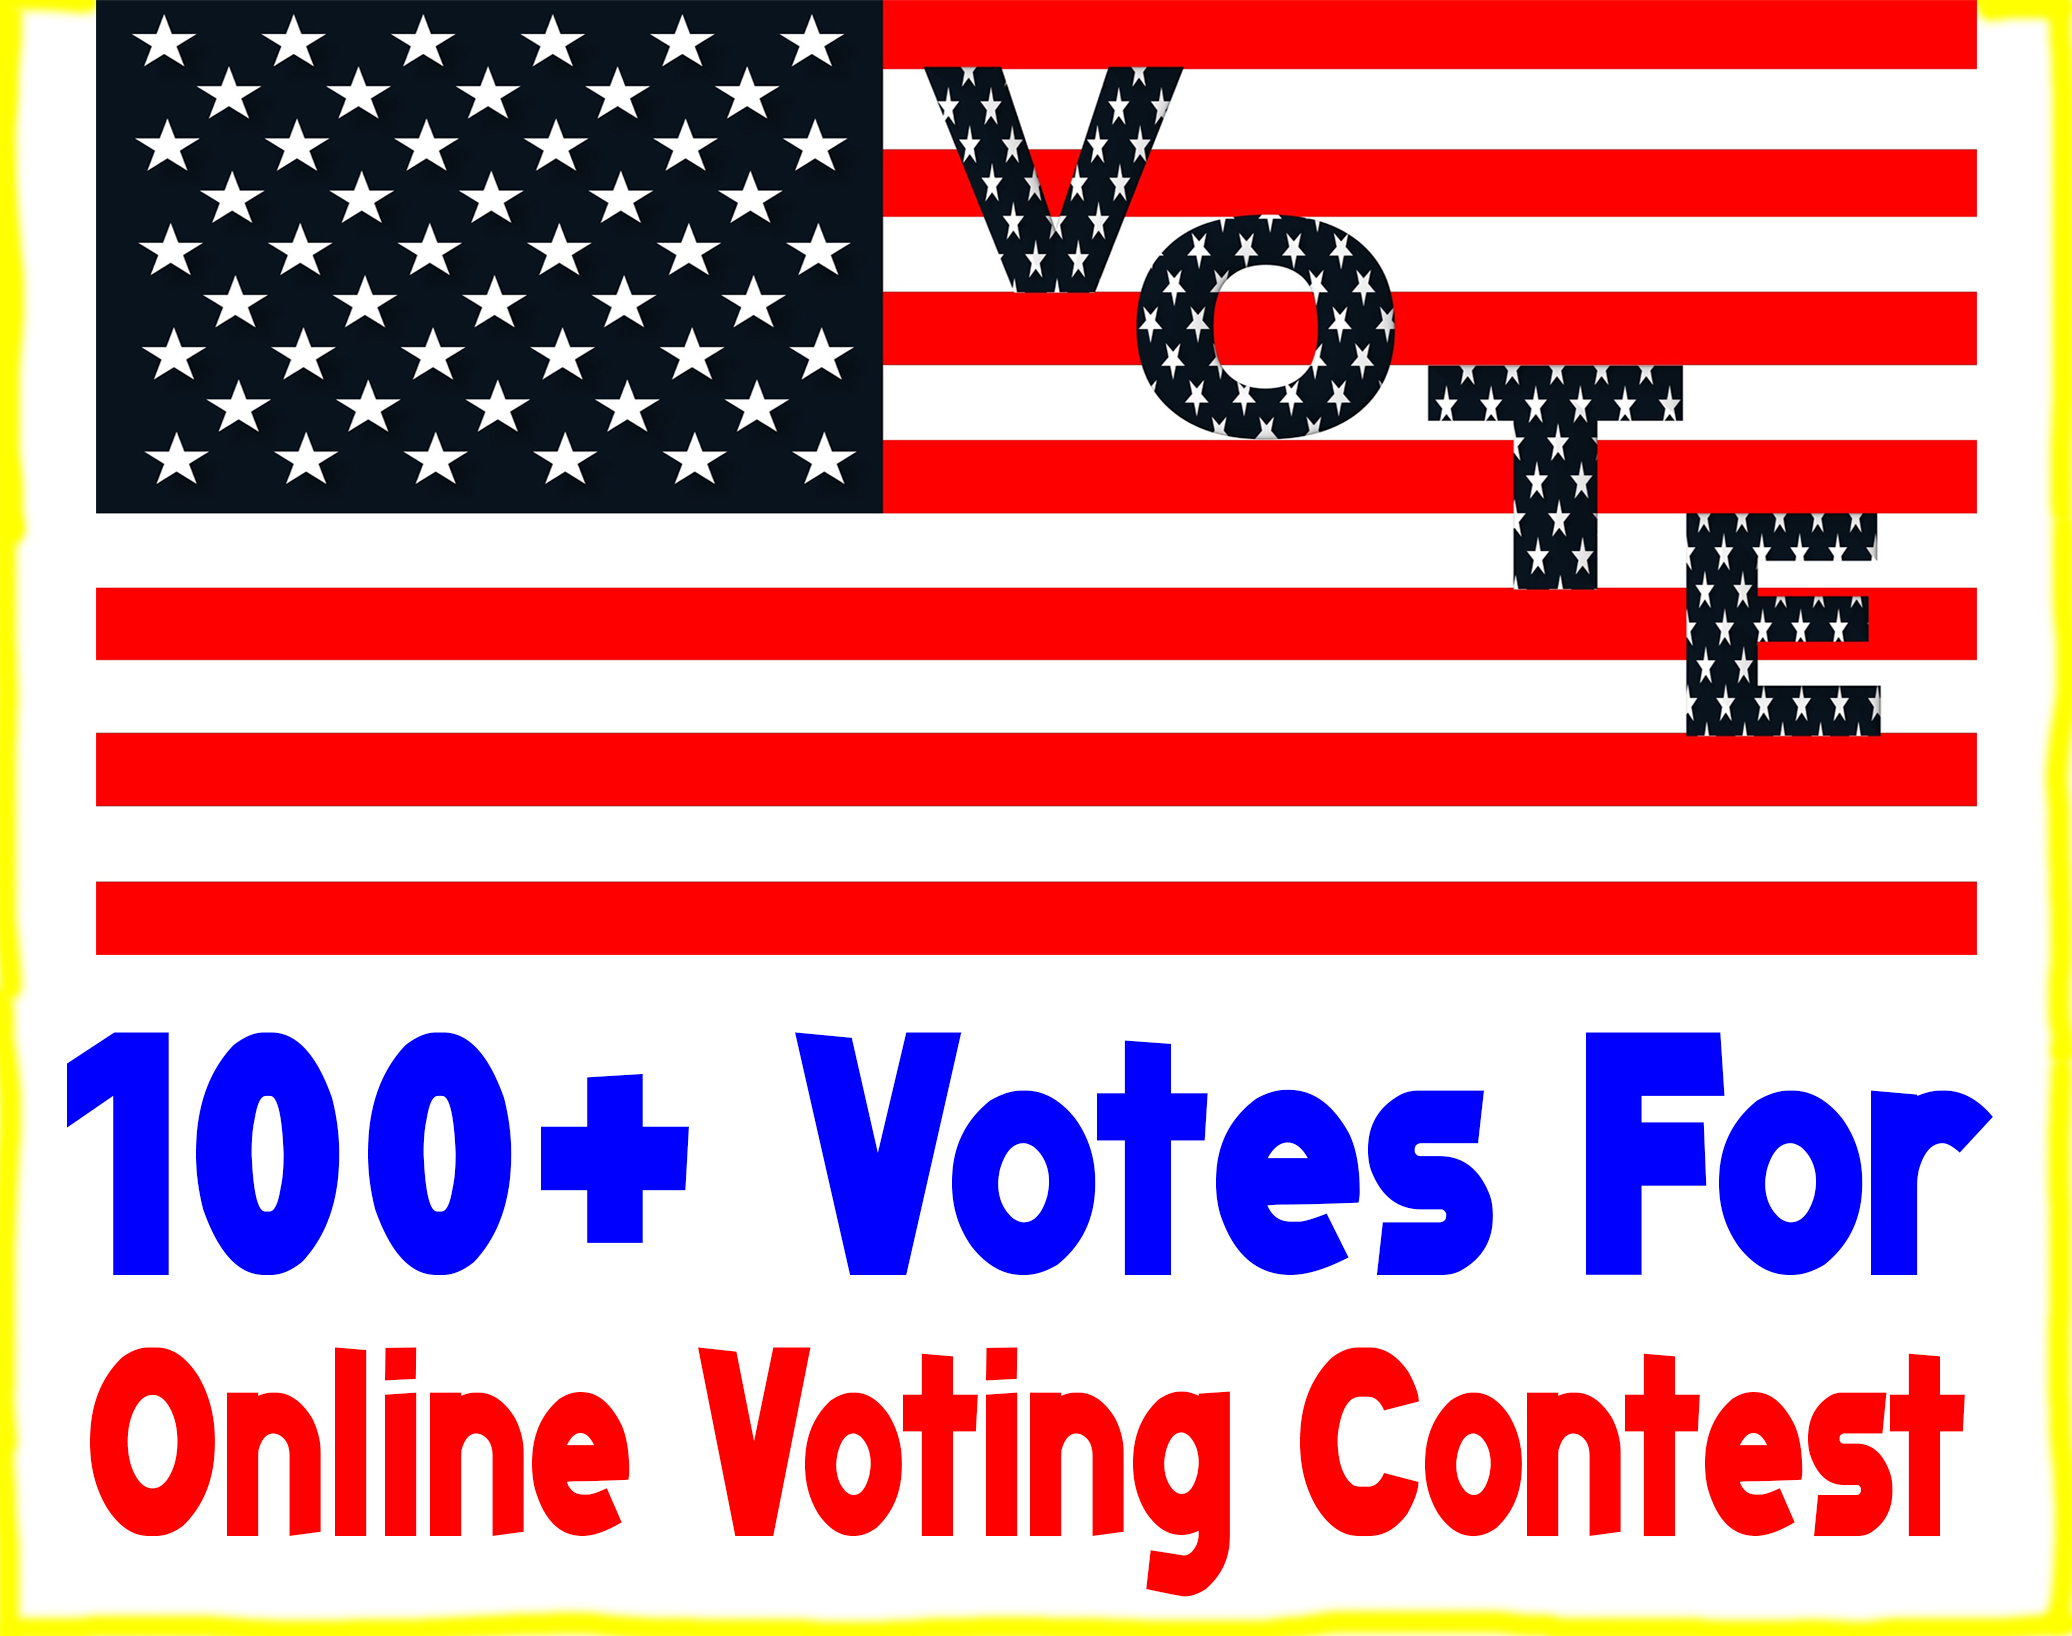 Give 100+ Votes For Your Online Voting Contest within 12 Hours